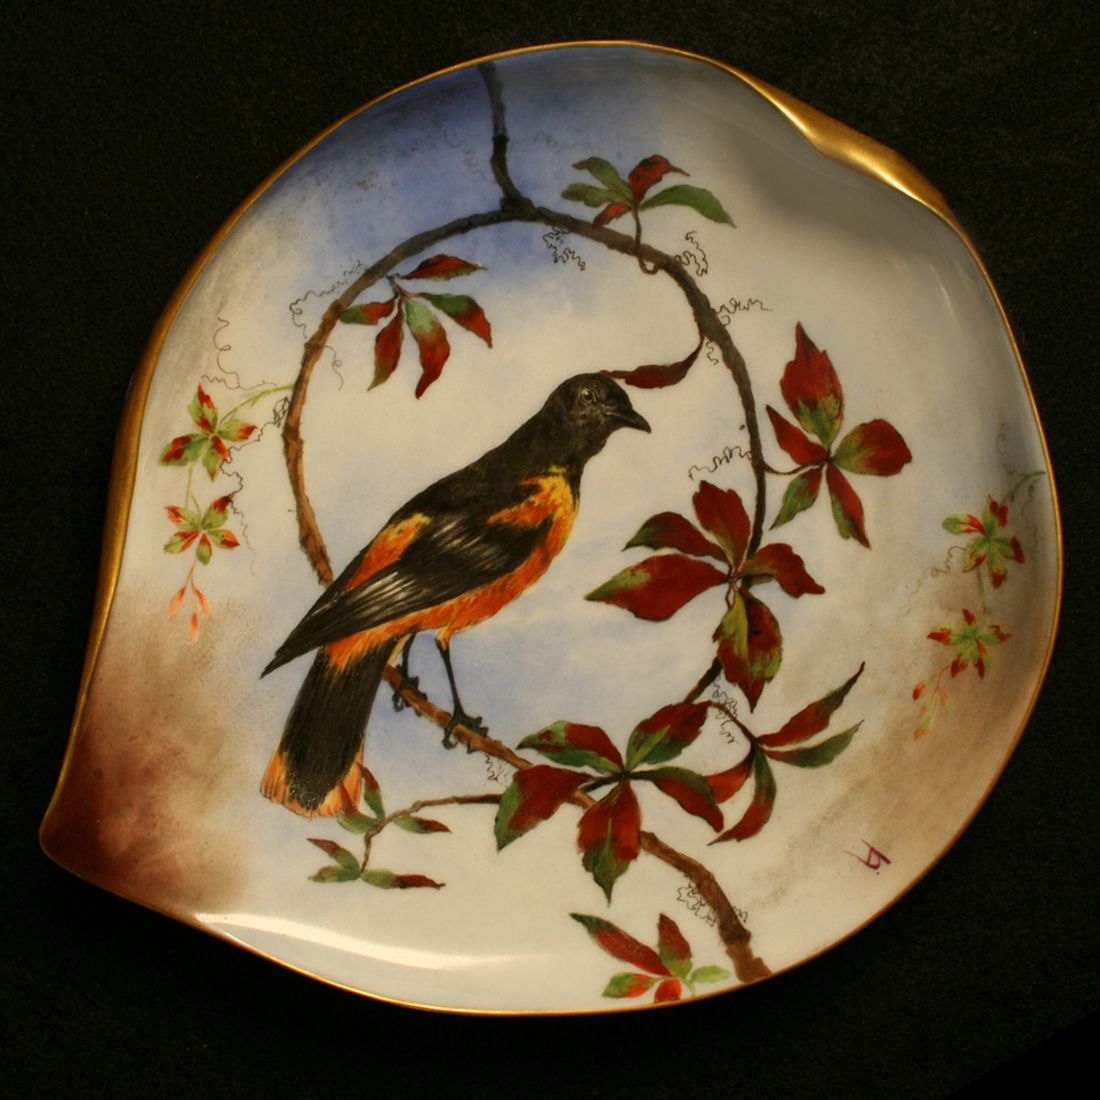 hayes_w.h_china_full_oriole_shot_rutherford-hayes-dessert-plate-1